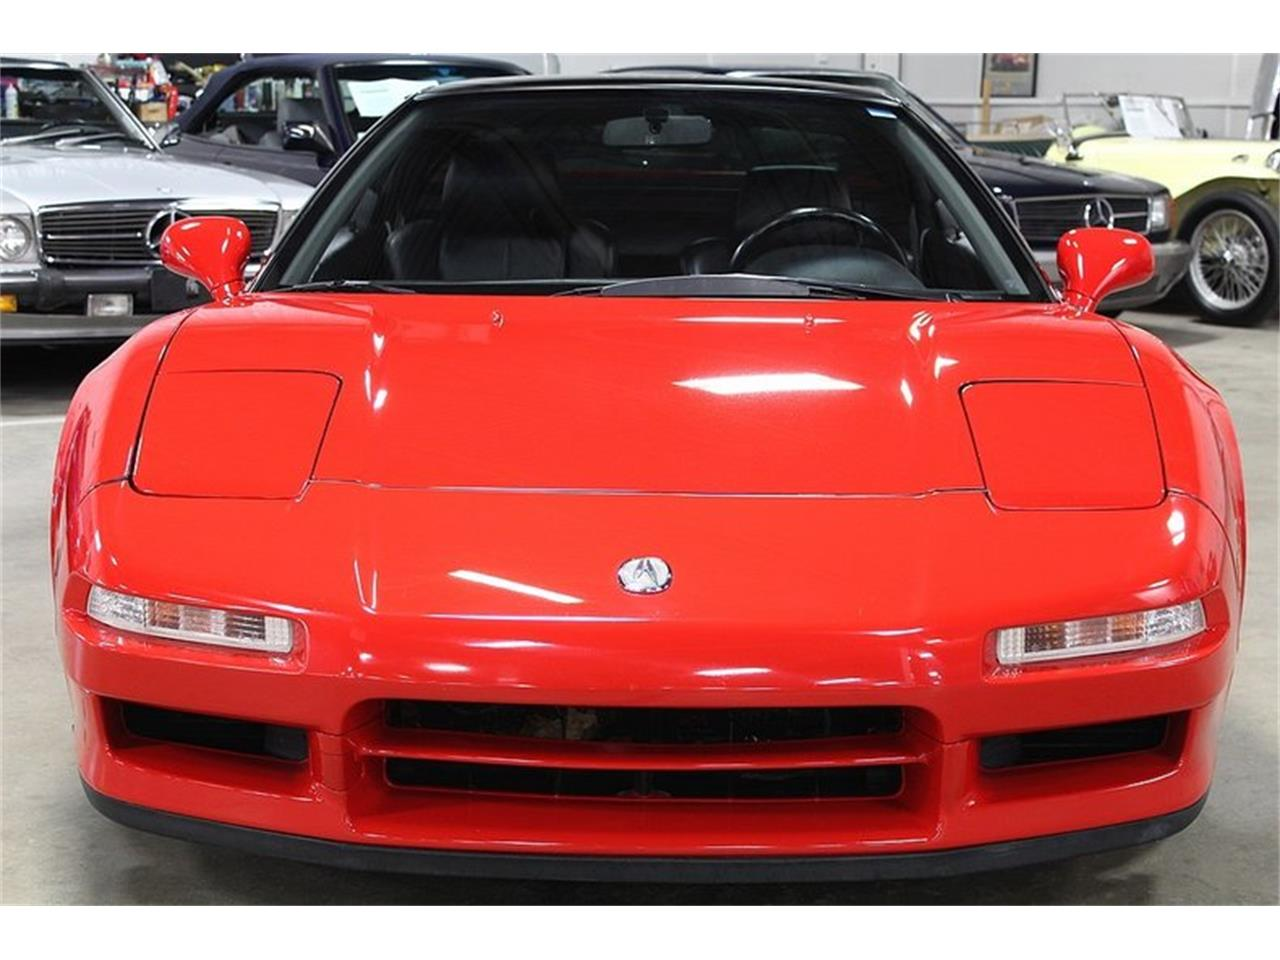 Large Picture of '91 Acura NSX located in Kentwood Michigan - $57,900.00 Offered by GR Auto Gallery - LSBJ